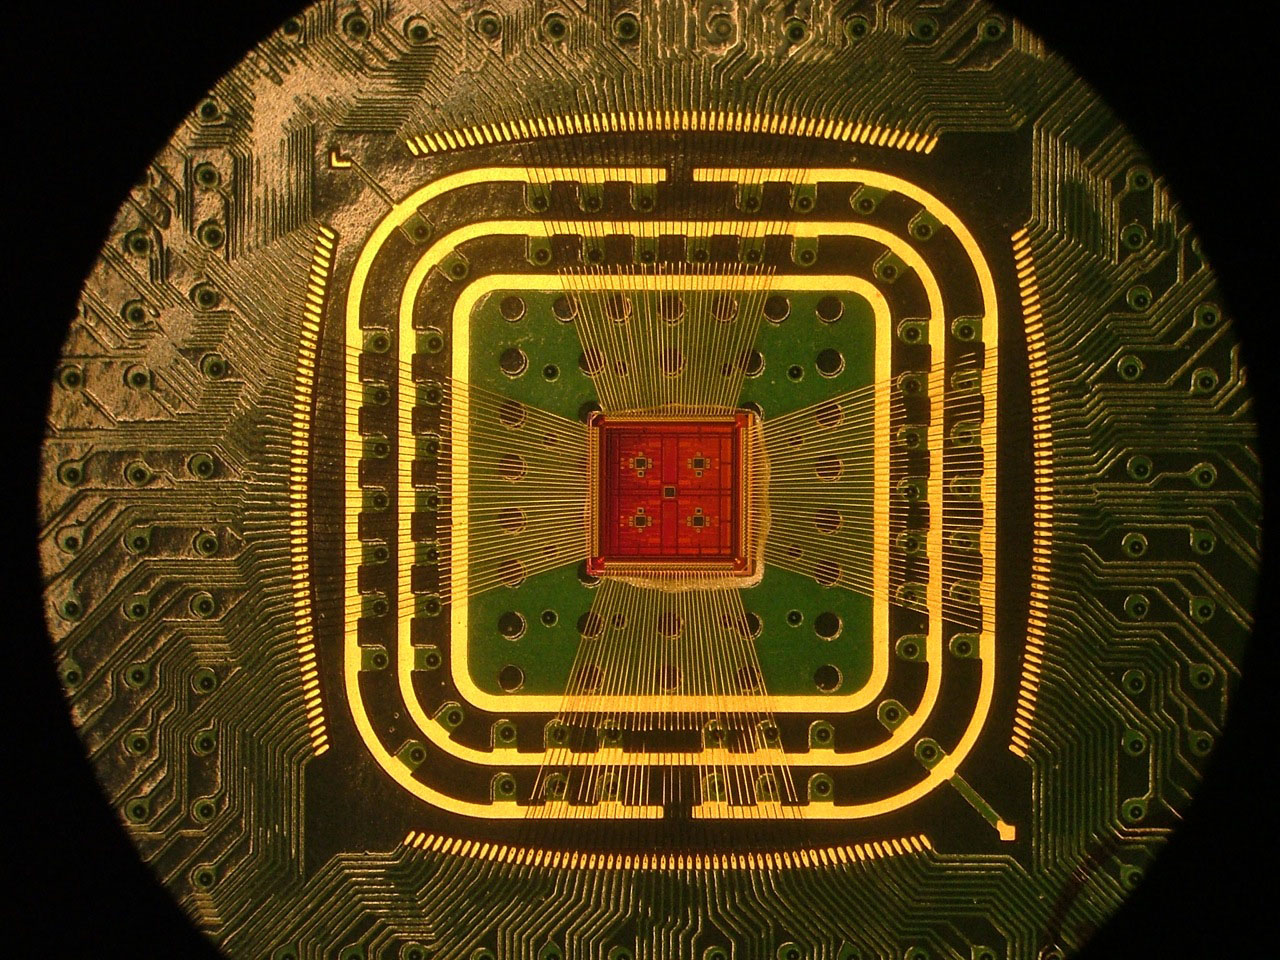 Photograph of the amplifier chip, attached to a circuit board with thin gold wirebonds. (Credit: Columbia Engineering)